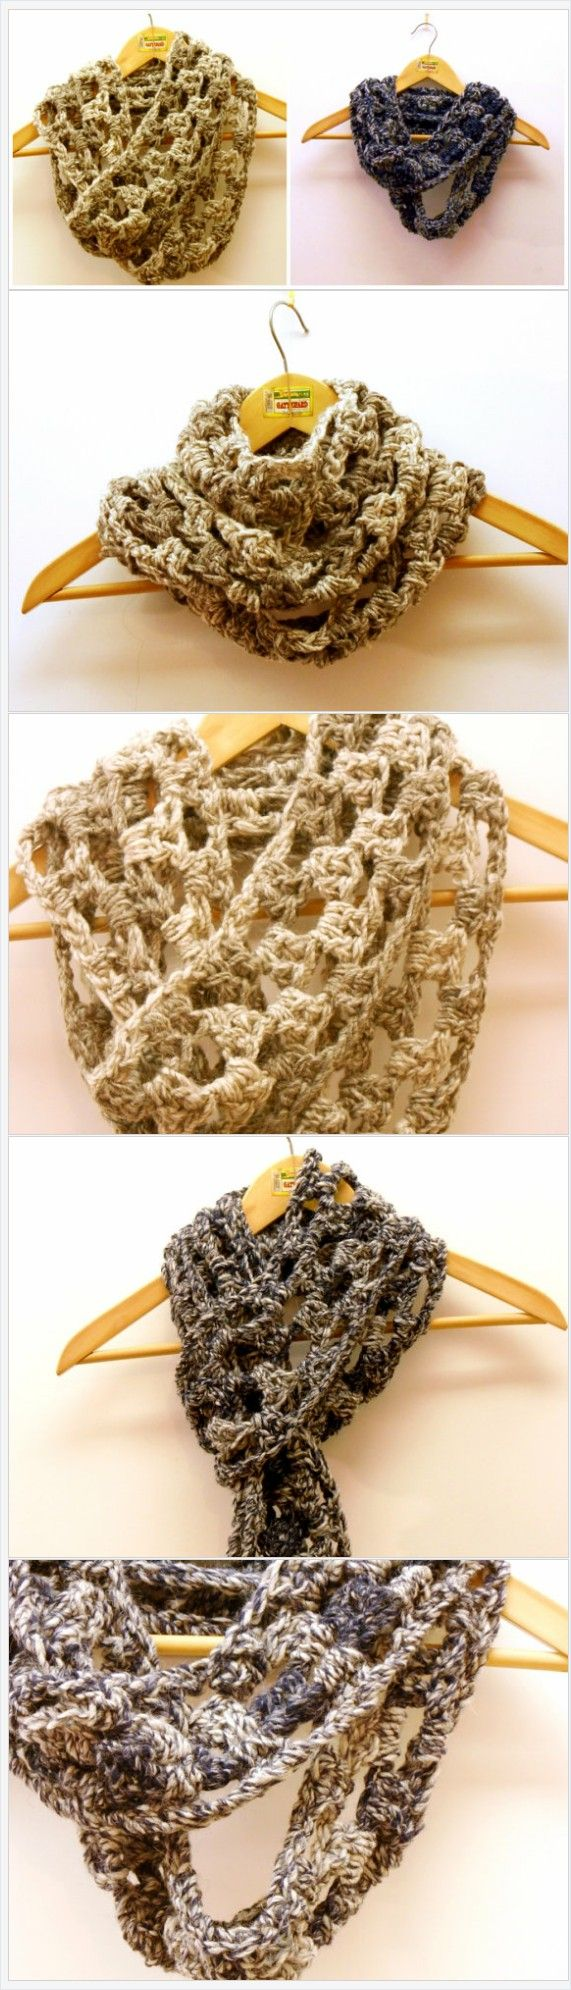 Chunky circle scarf, grunge infinity scarf, crochet cowl in alpaca and merino, in urban trending colors